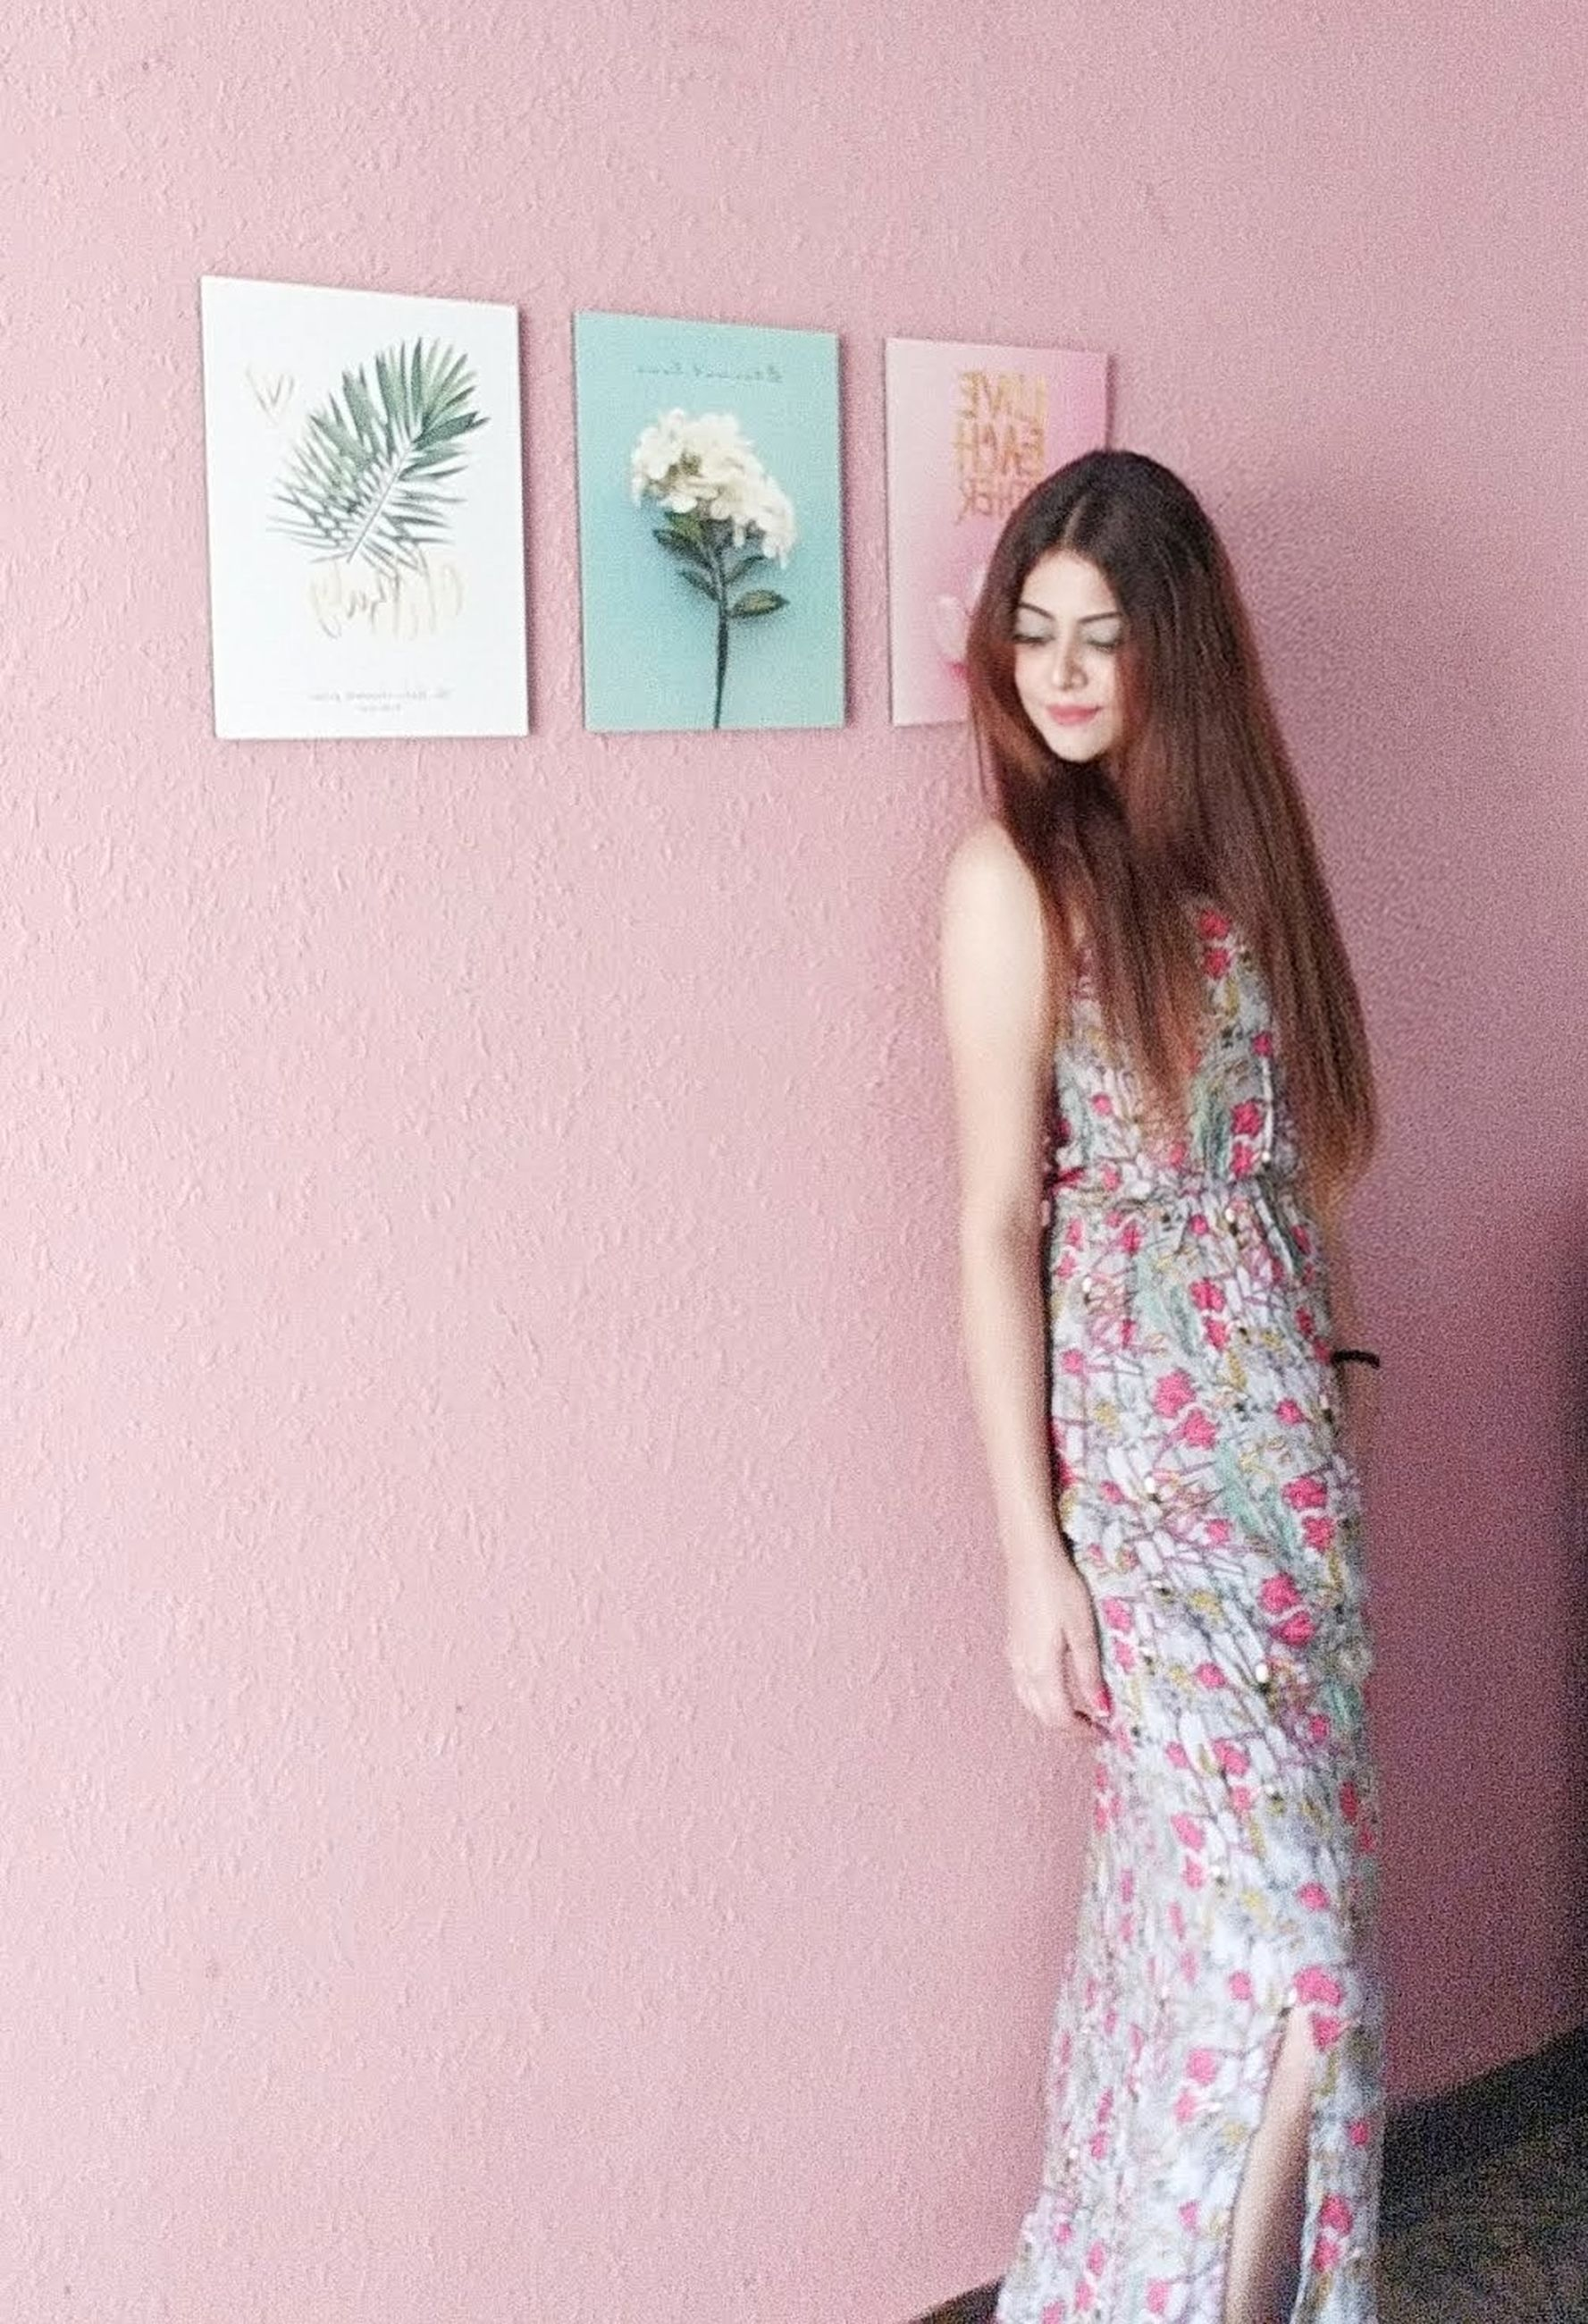 standing, one person, long hair, hairstyle, wall - building feature, three quarter length, young adult, hair, lifestyles, casual clothing, young women, portrait, looking at camera, women, real people, leisure activity, fashion, beautiful woman, black hair, floral pattern, contemplation